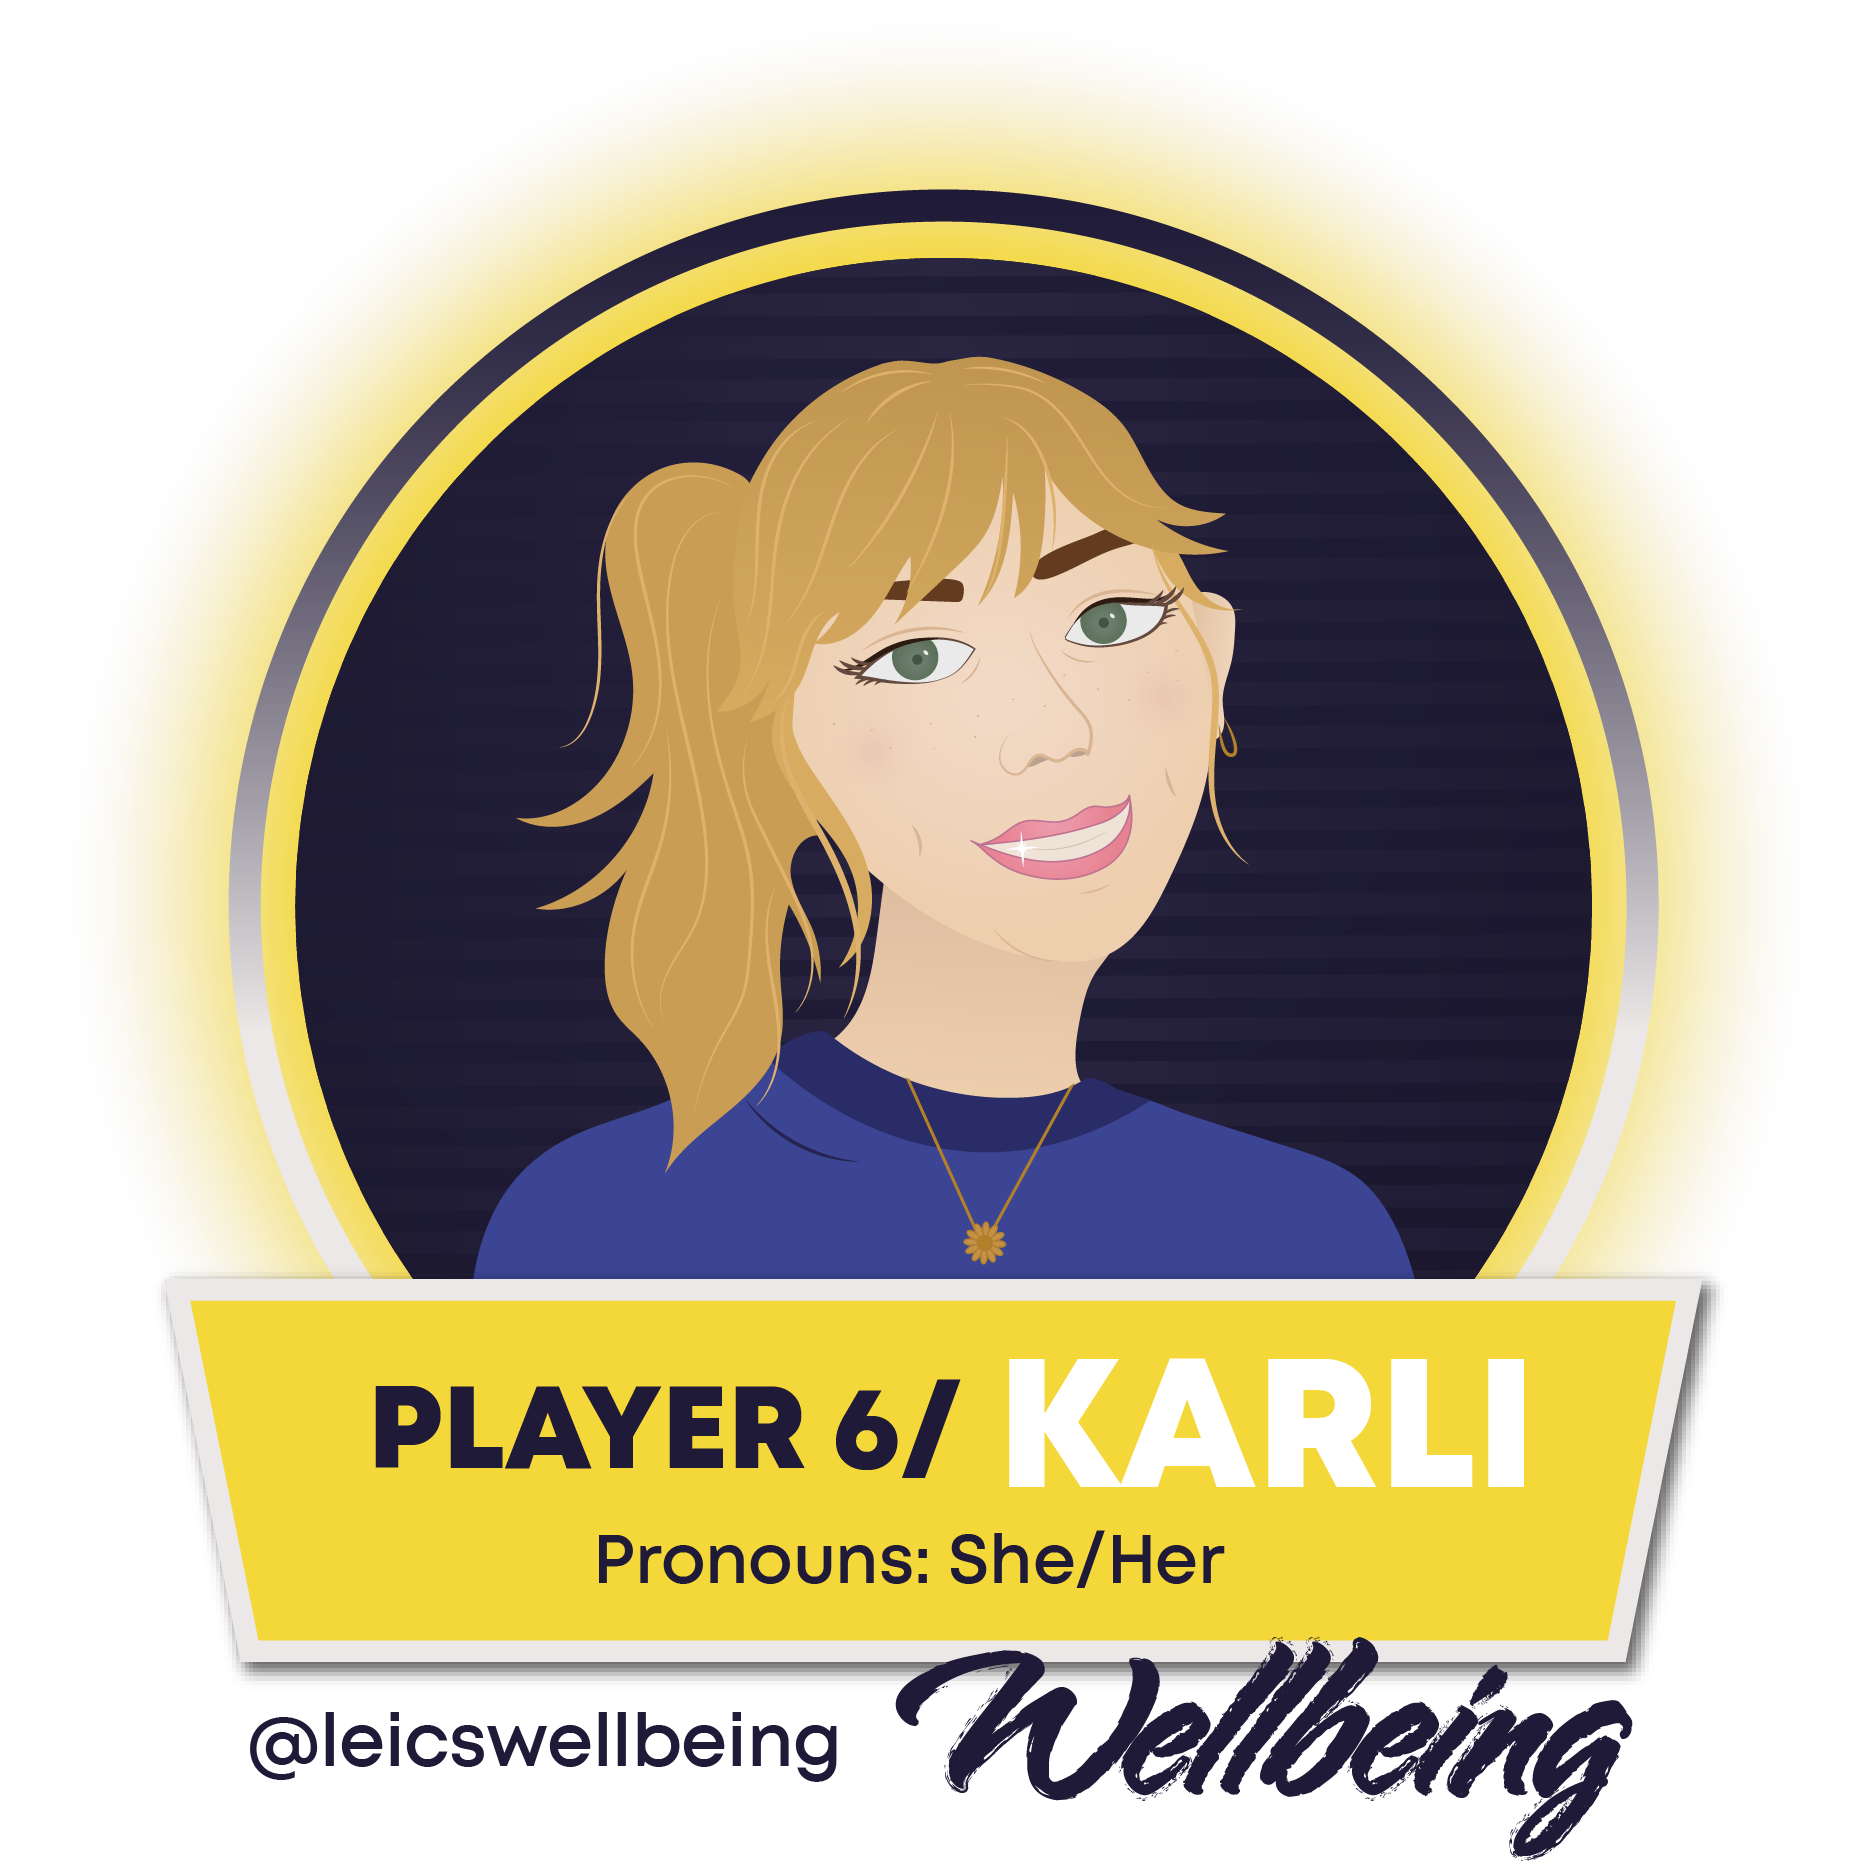 Image of Karli Wagner, Wellbeing Officer She/Her, click for full profile